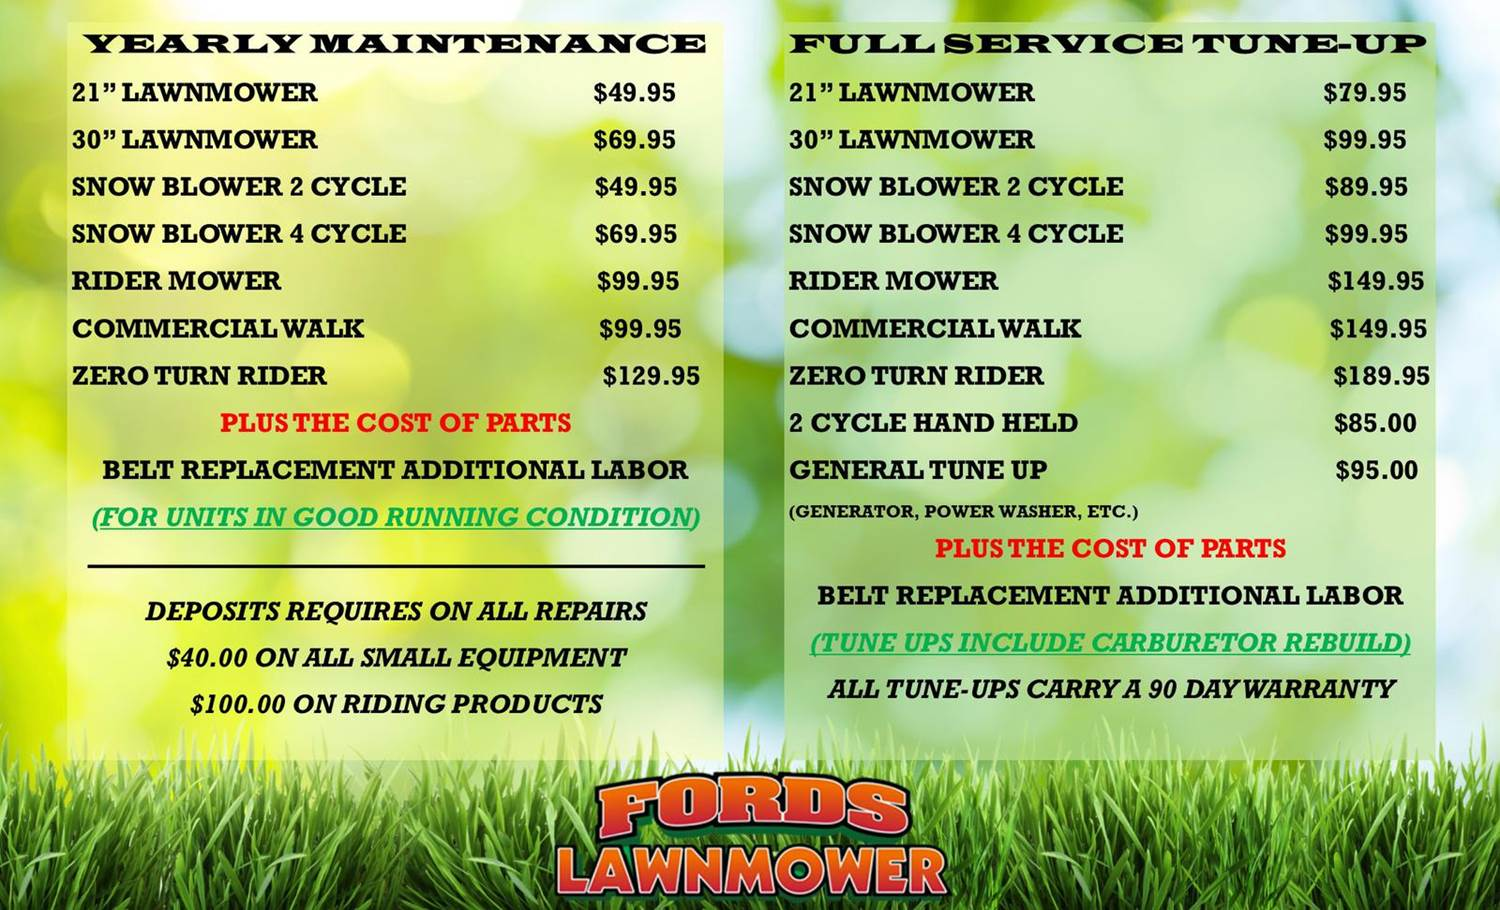 TUNE UP PRICES